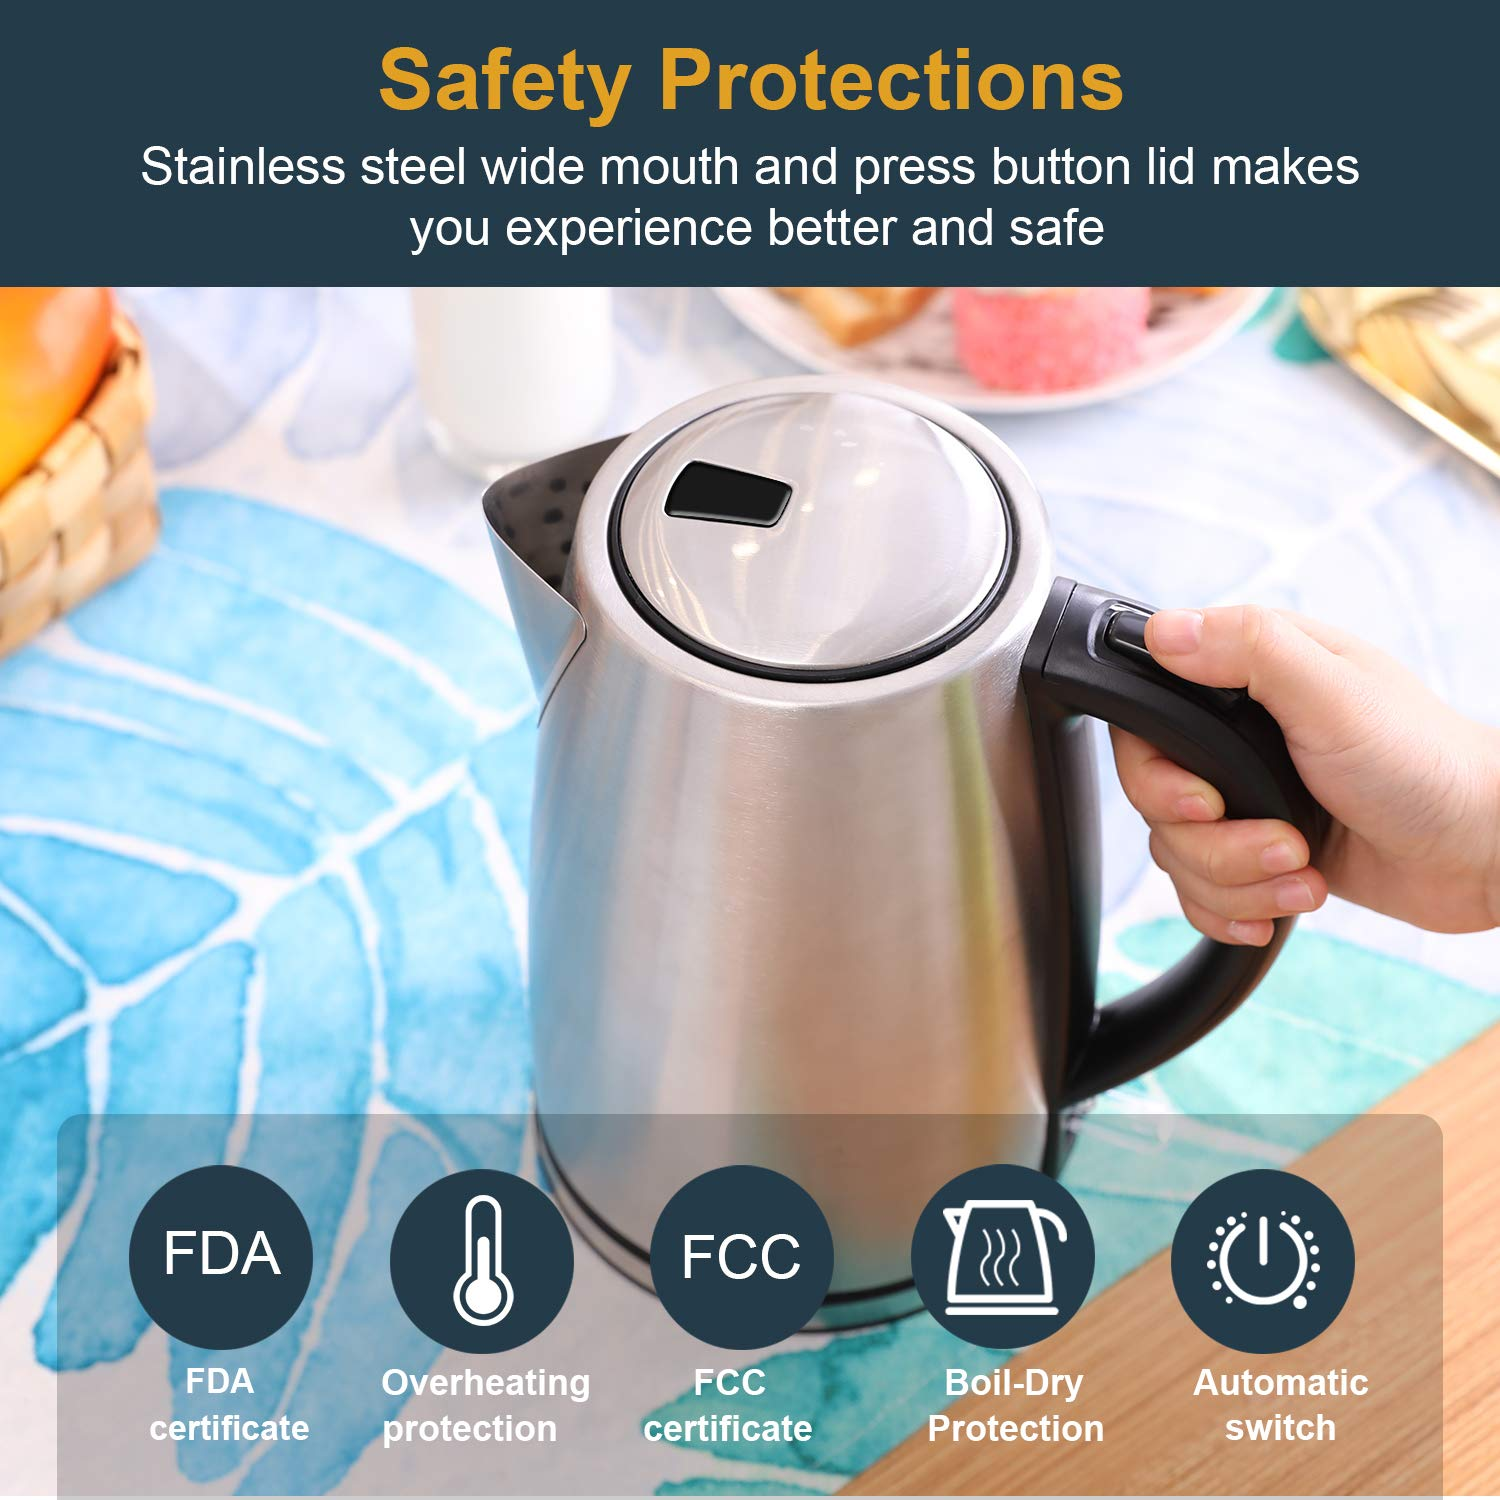 Electric Kettle - 1.7 Liter 304 Stainless Steel Hot Water kettle - Coffee Pot & Tea Kettle - Auto Shutoff and Boil Dry Protection, Cordless, FDA/FCC Approved by Weftnom (Image #3)